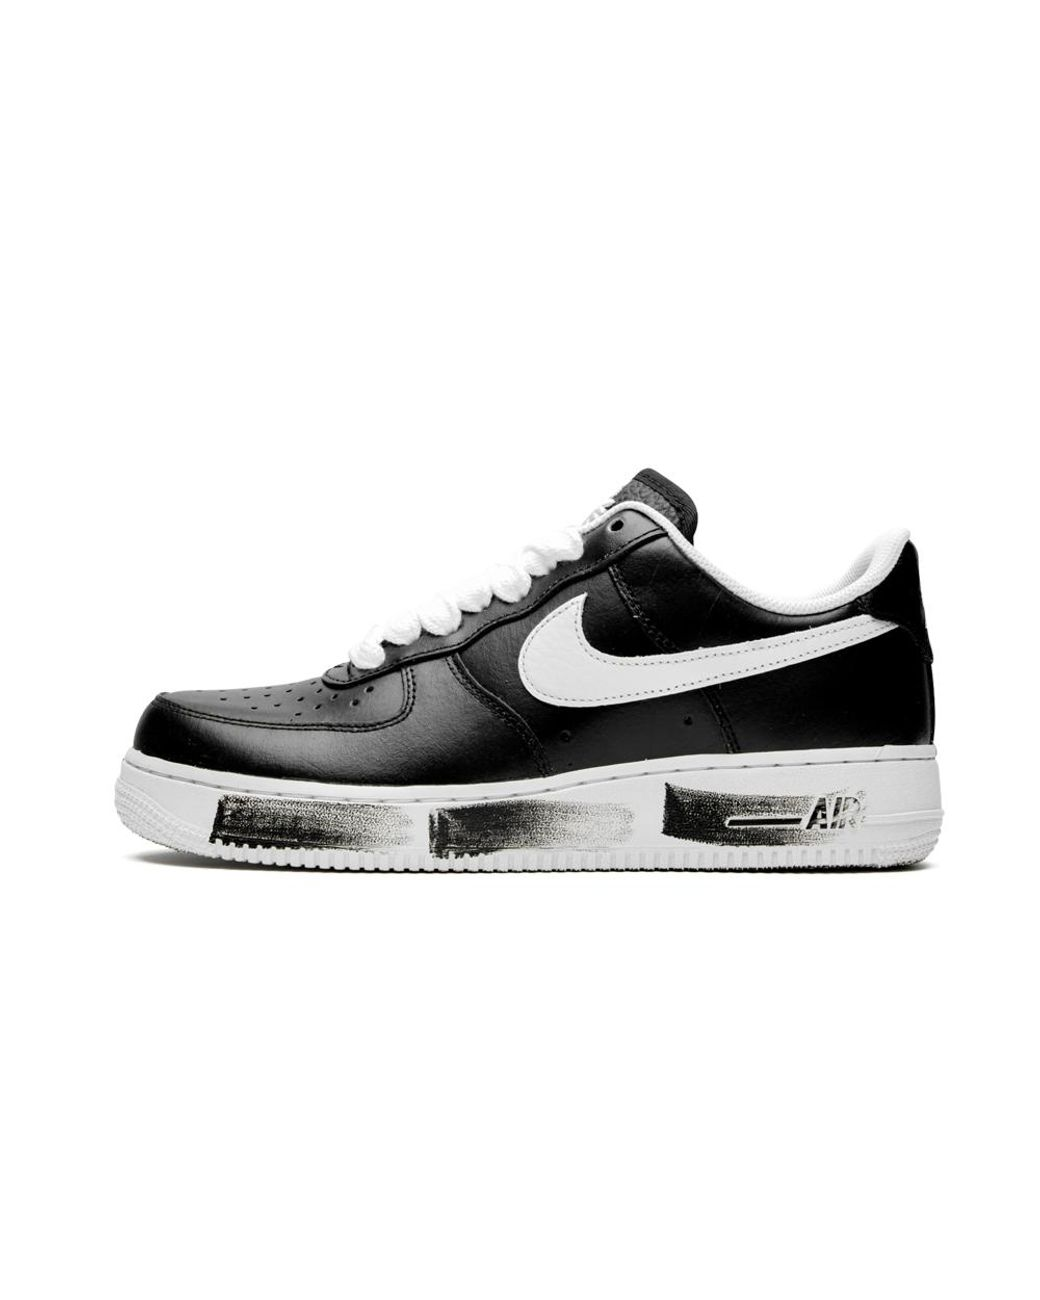 Nike Air Force 1 Low 'g-dragon' Shoes